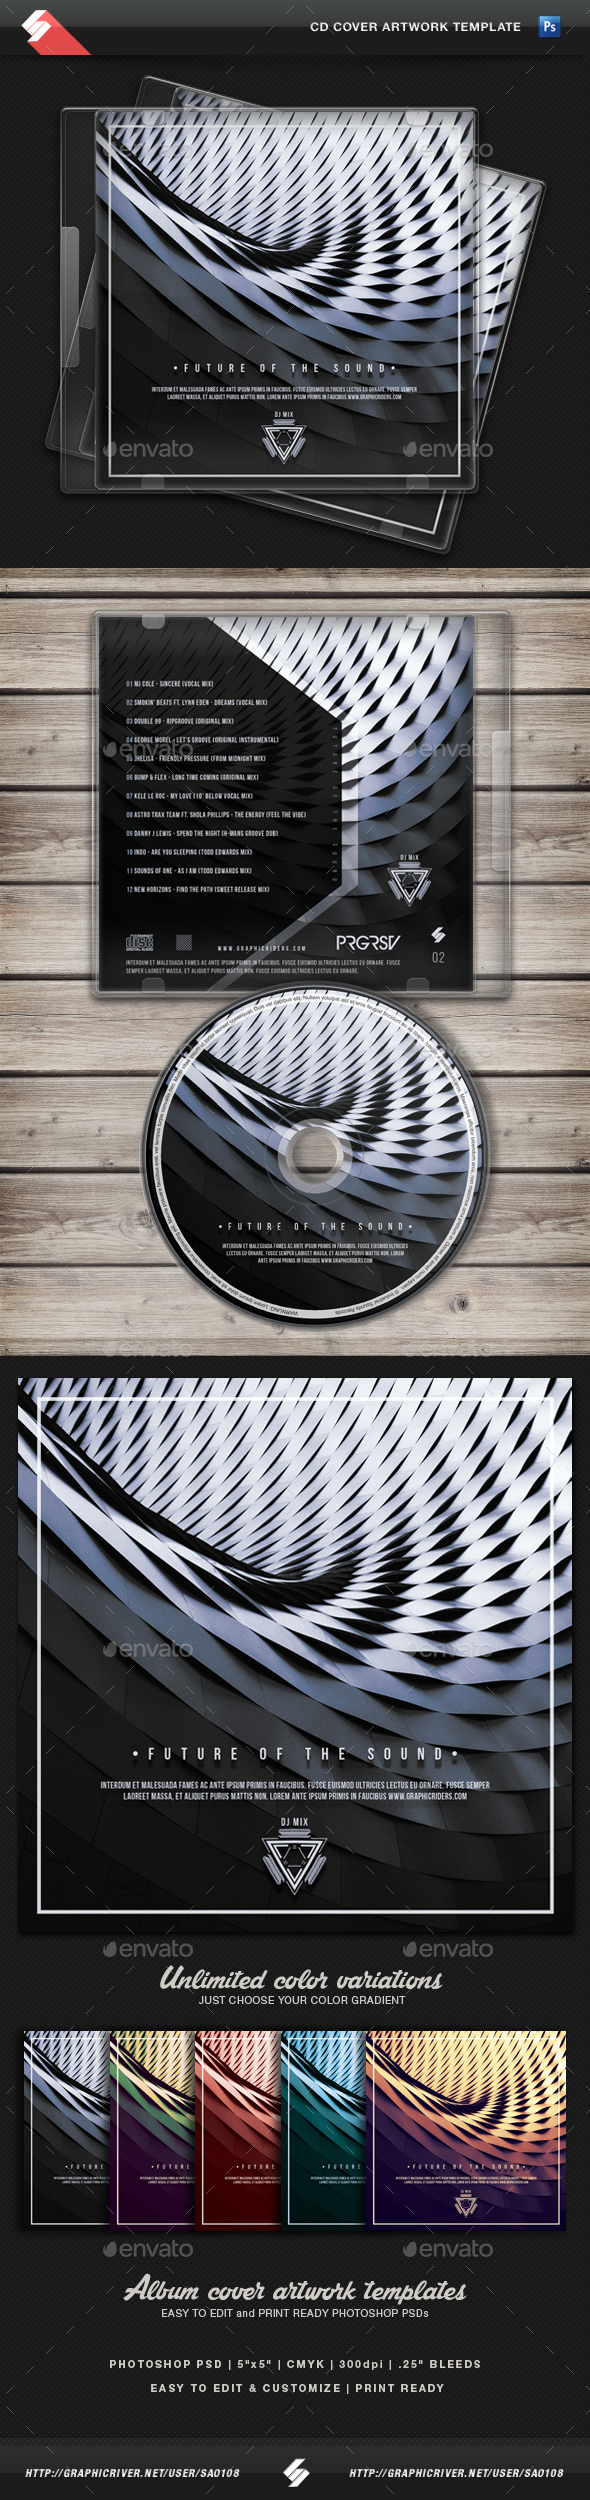 Future Of The Sound vol.2 - CD Cover Template - CD & DVD Artwork Print Templates